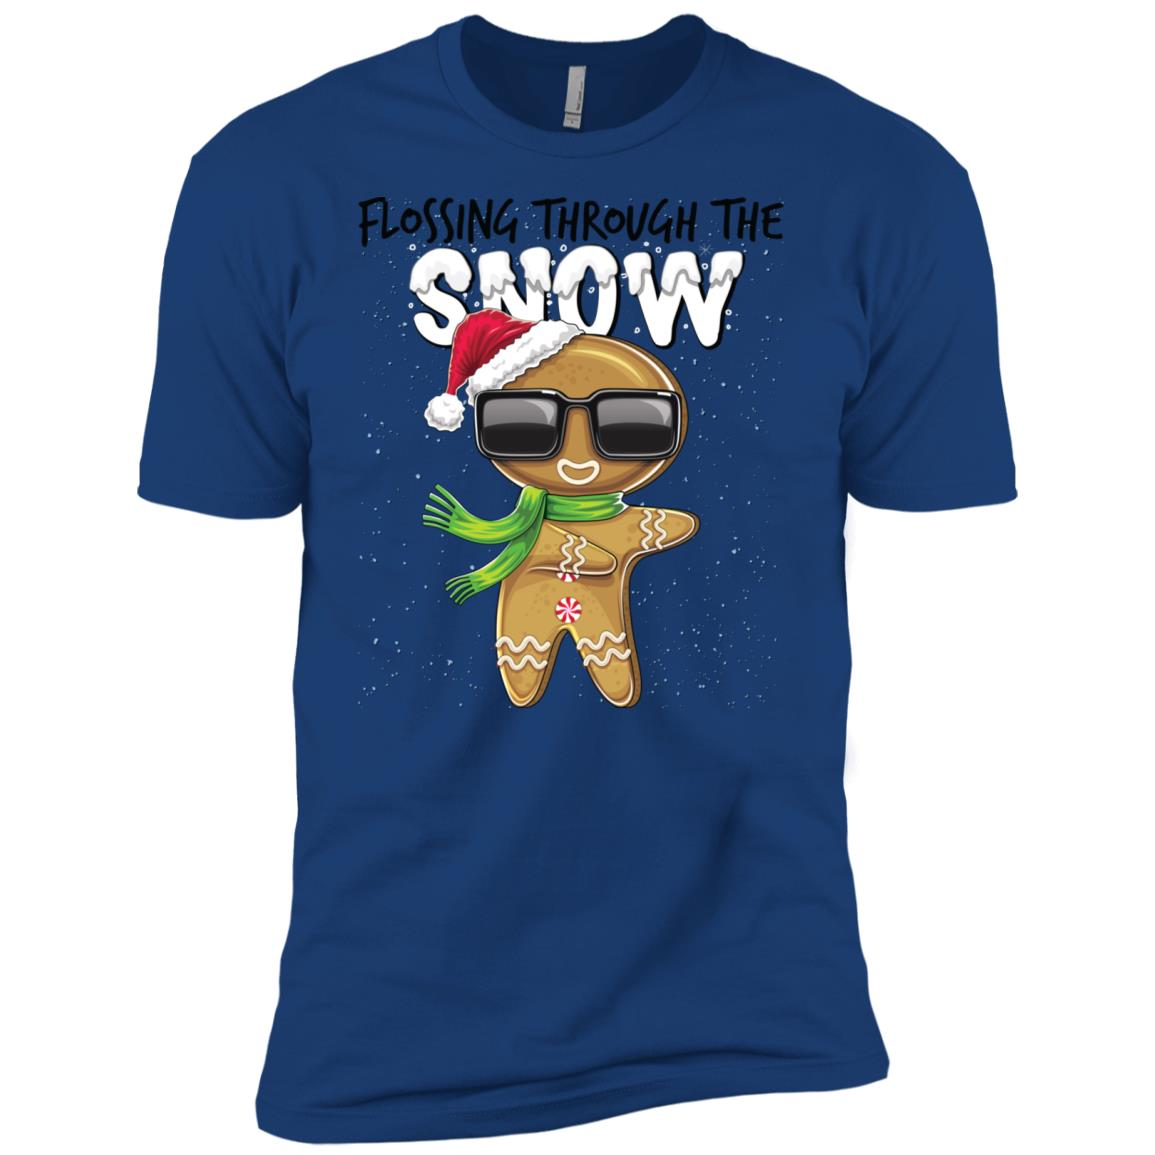 Flossing Through the Snow Gingerbread Gift Men Short Sleeve T-Shirt